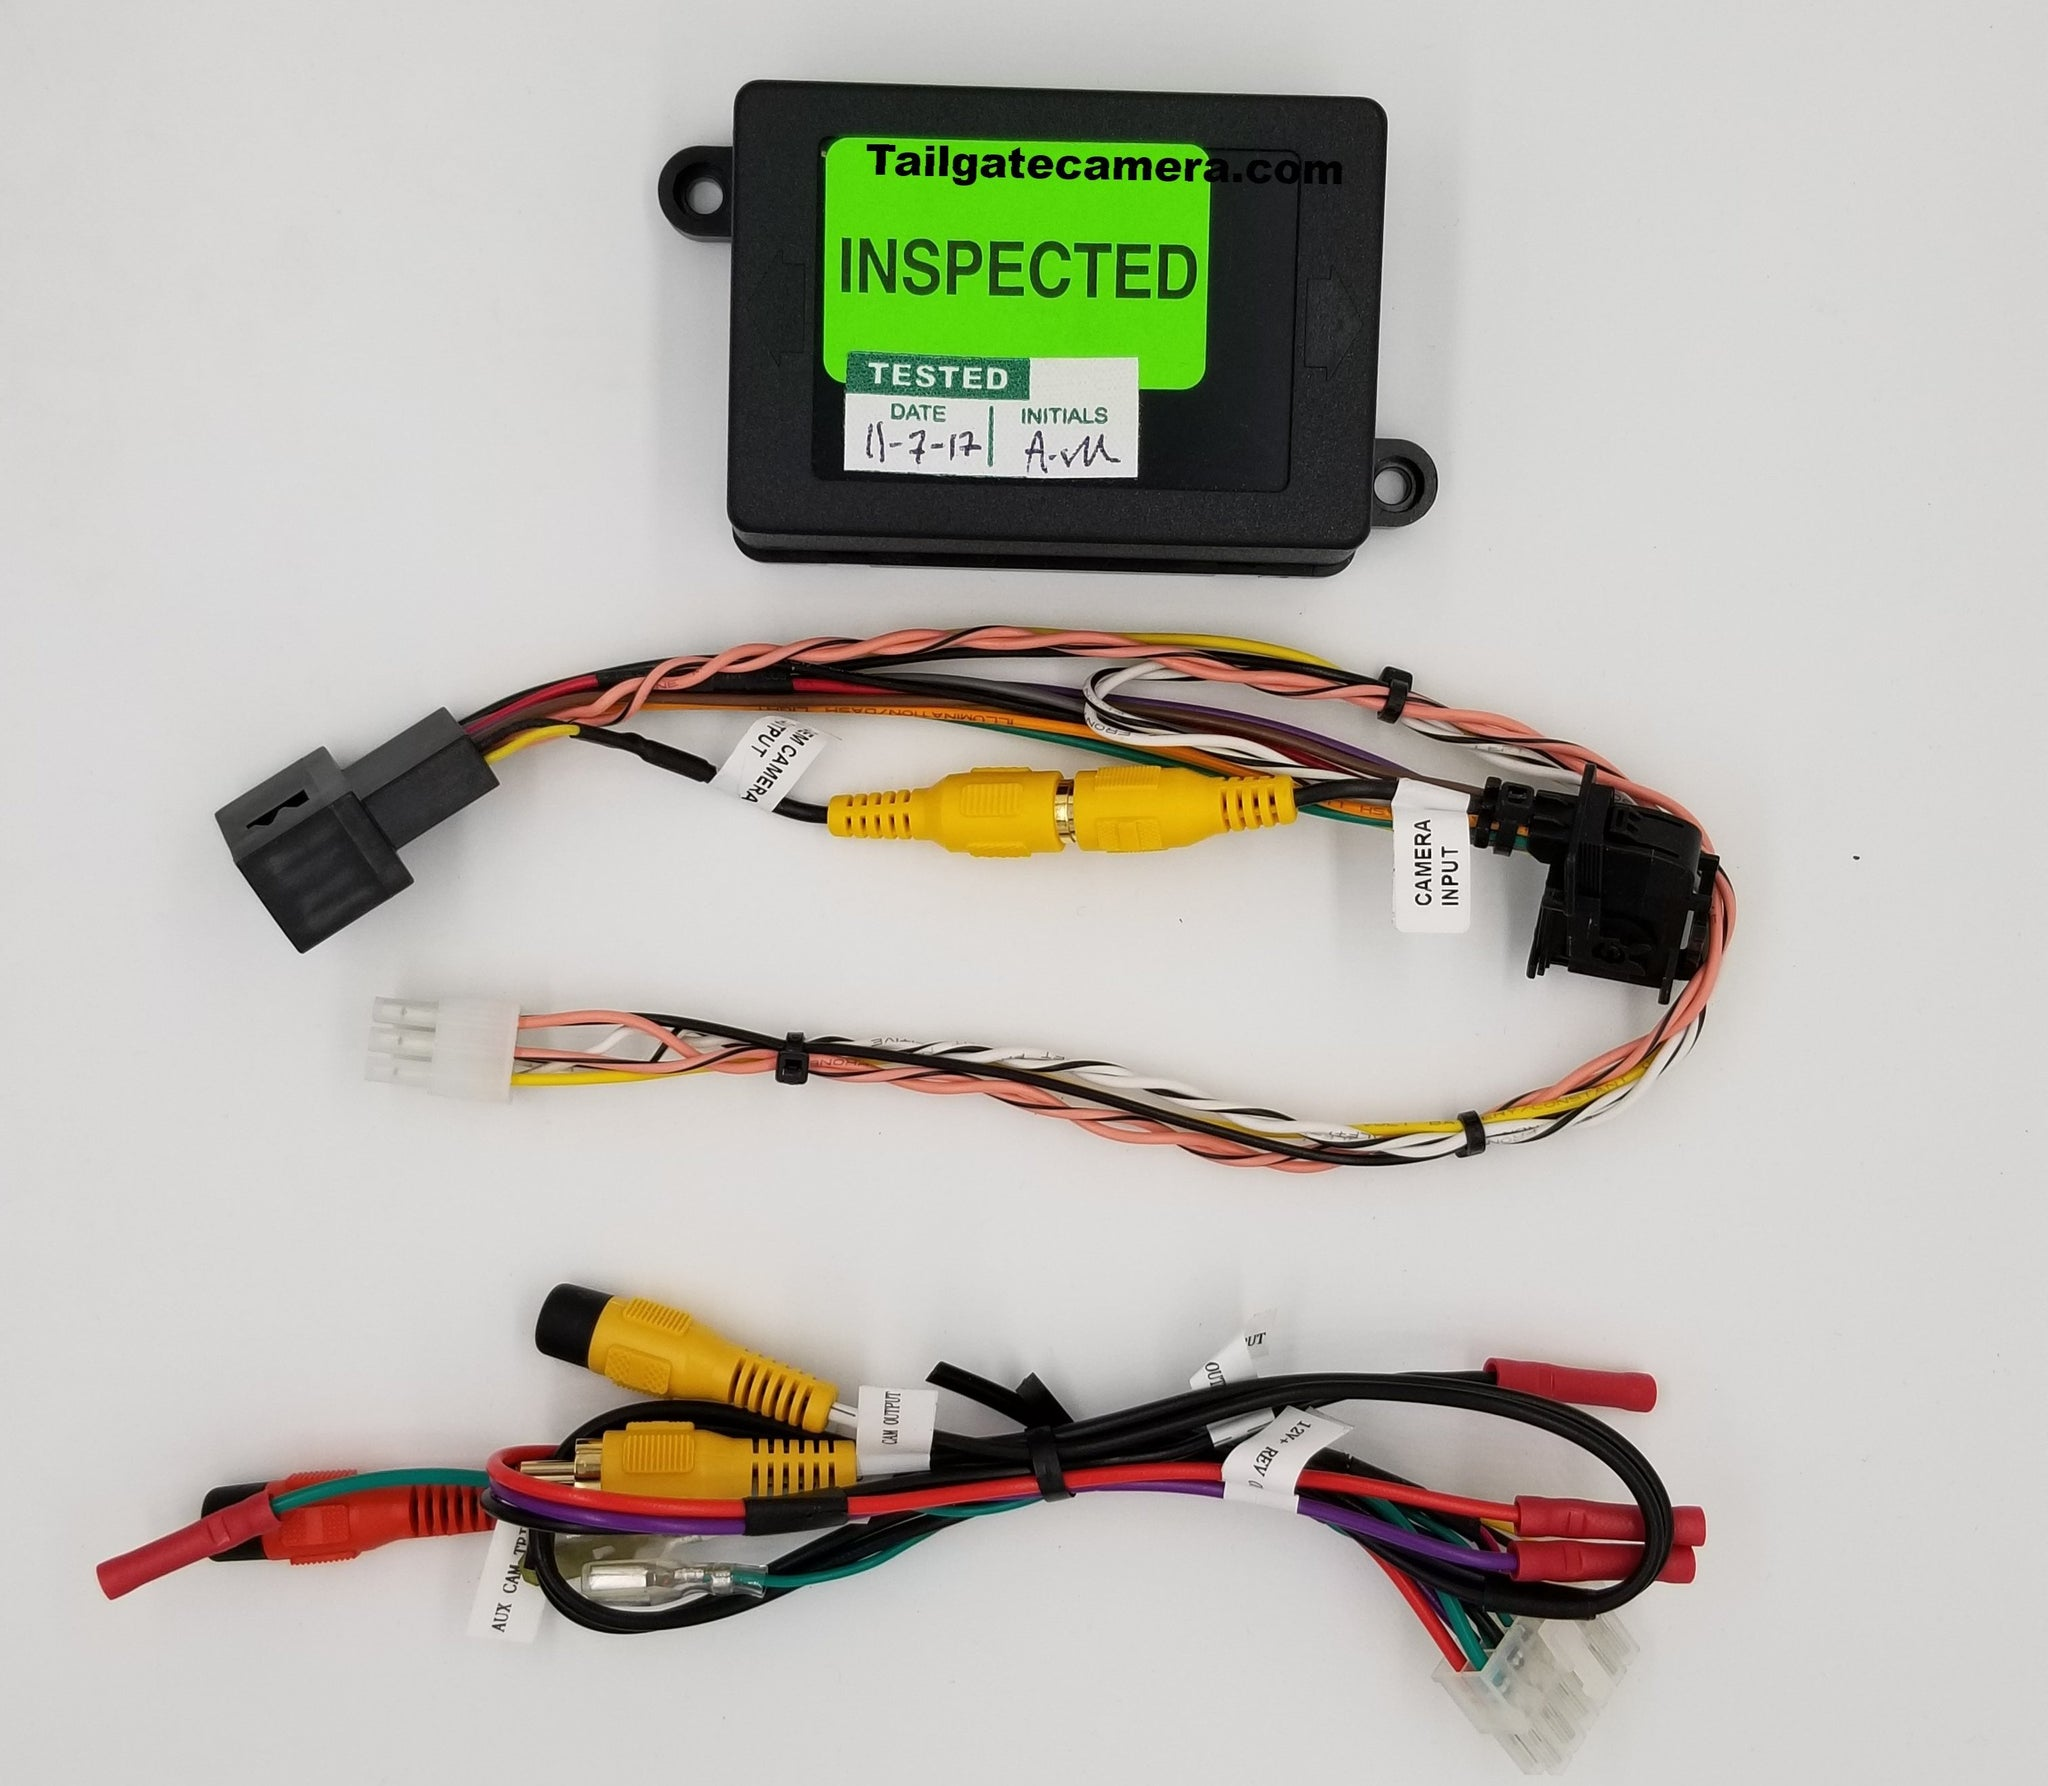 2013 Ford F150 Backup Camera Wiring Diagram from cdn.shopify.com